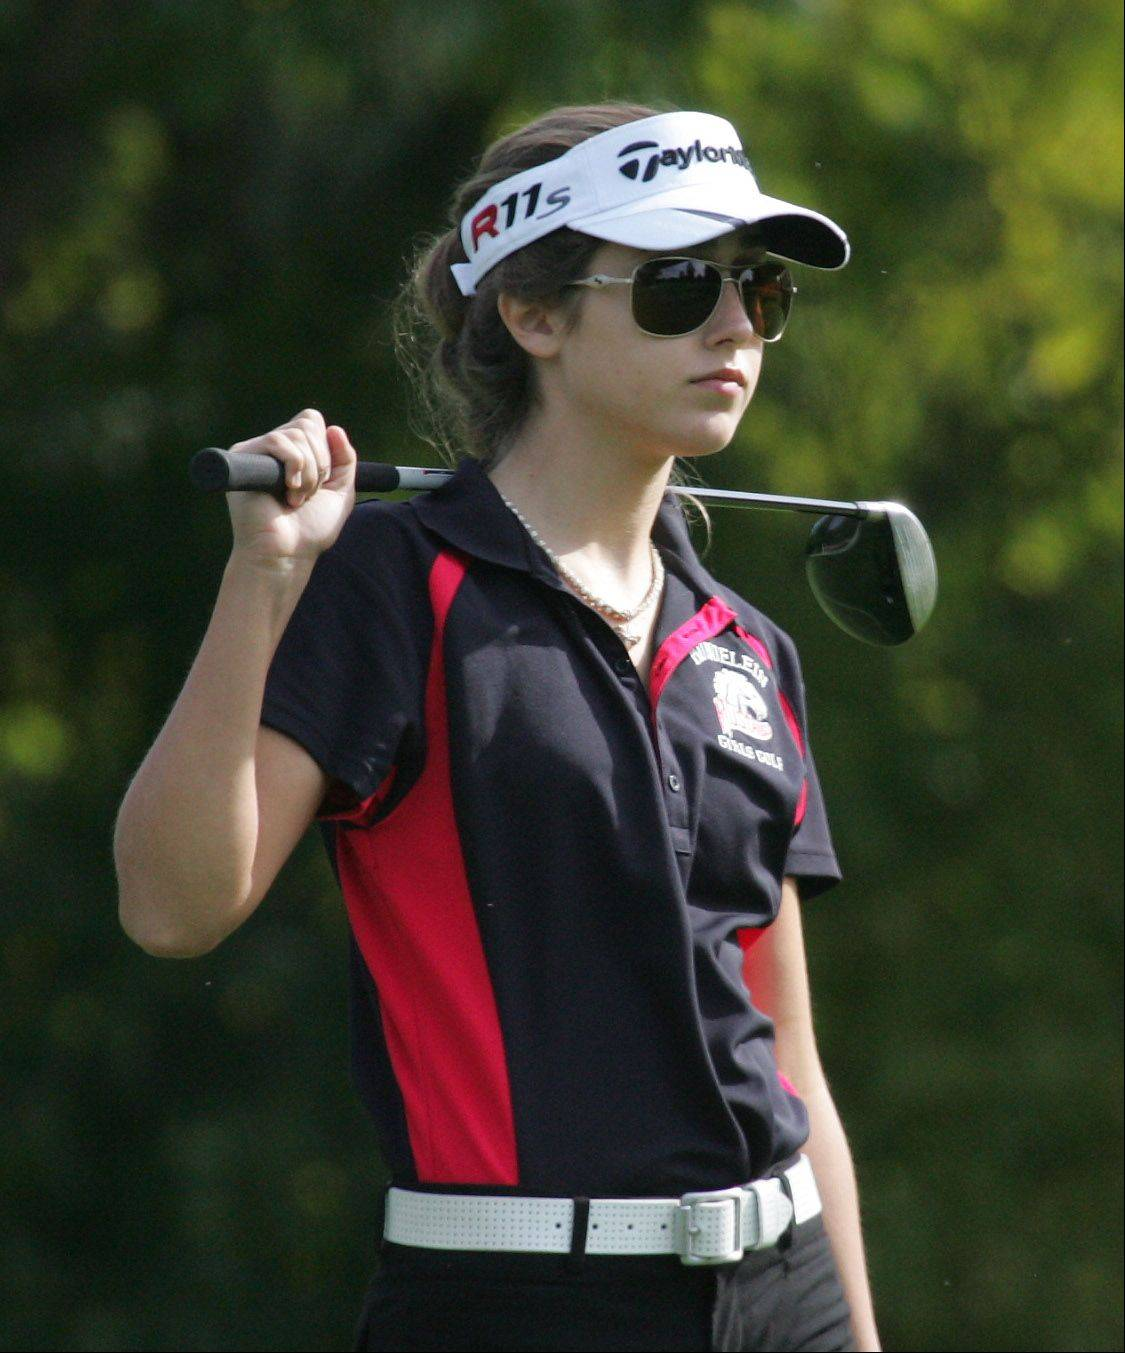 Mundelein golfer Courteney Fabbri during the North Suburban Conference girls golf tournament Tuesday at Deerpath Golf Course in Lake Forest.